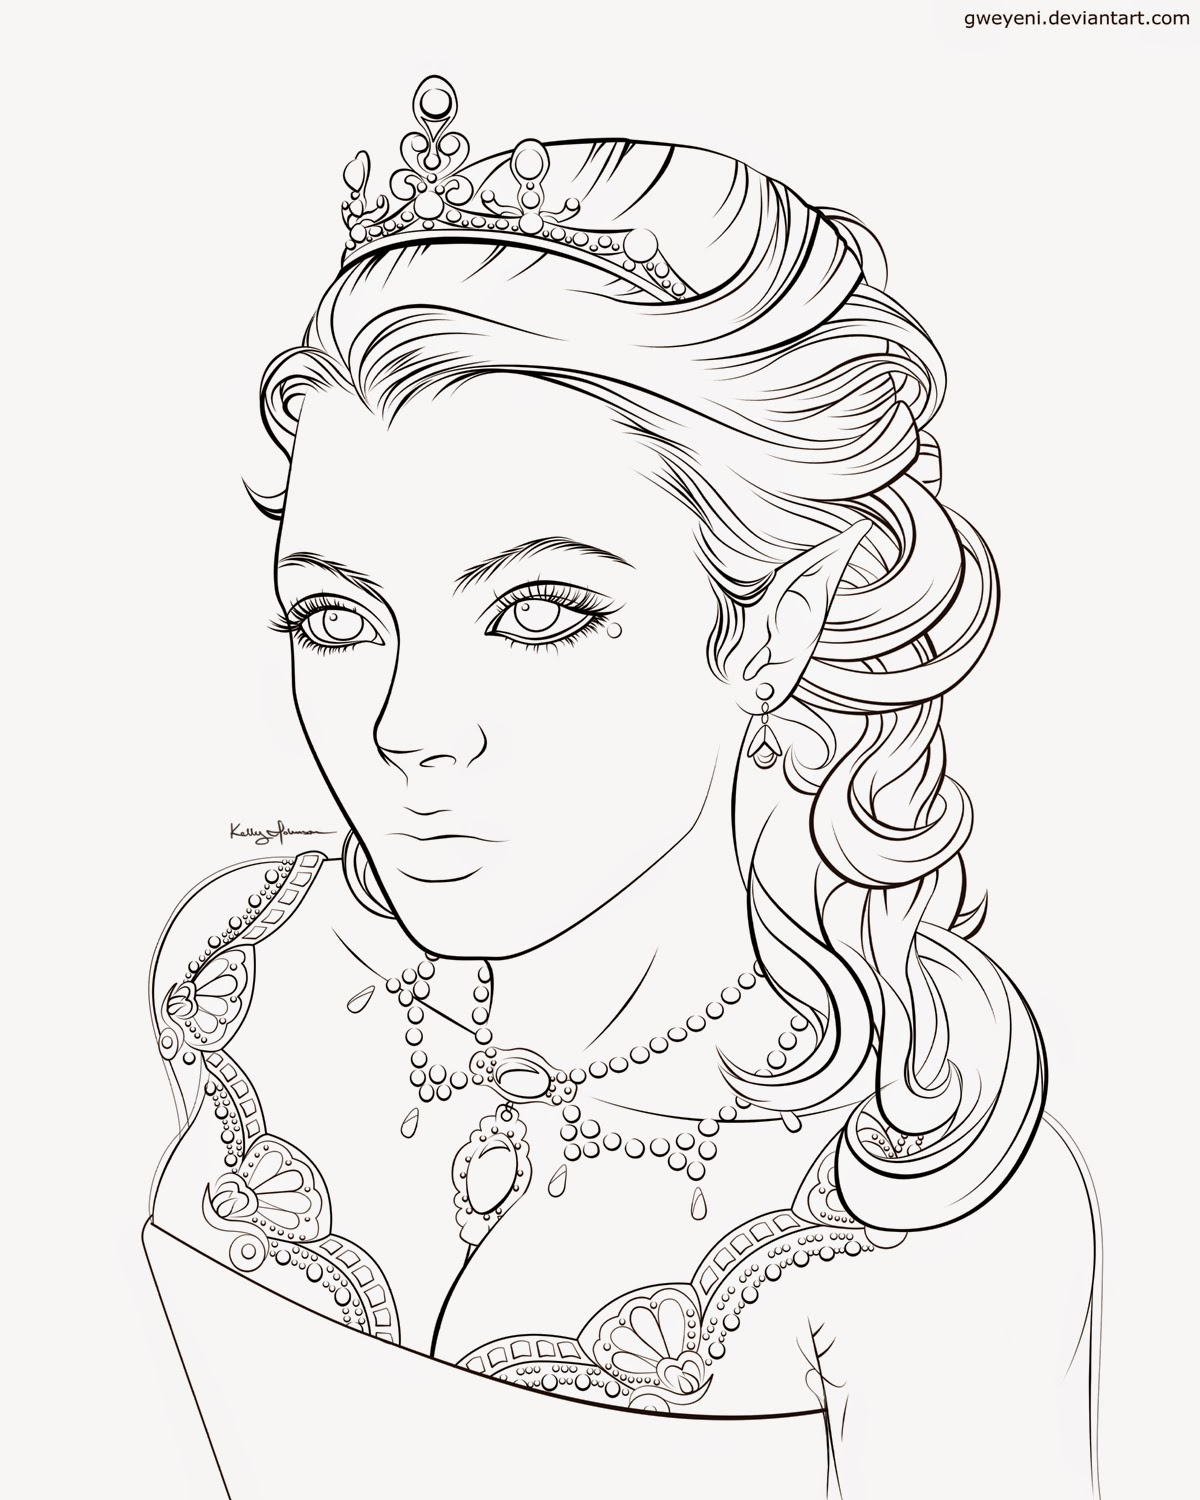 1200x1500 King And Queen Coloring Pages Sketch Template, Queen Coloring